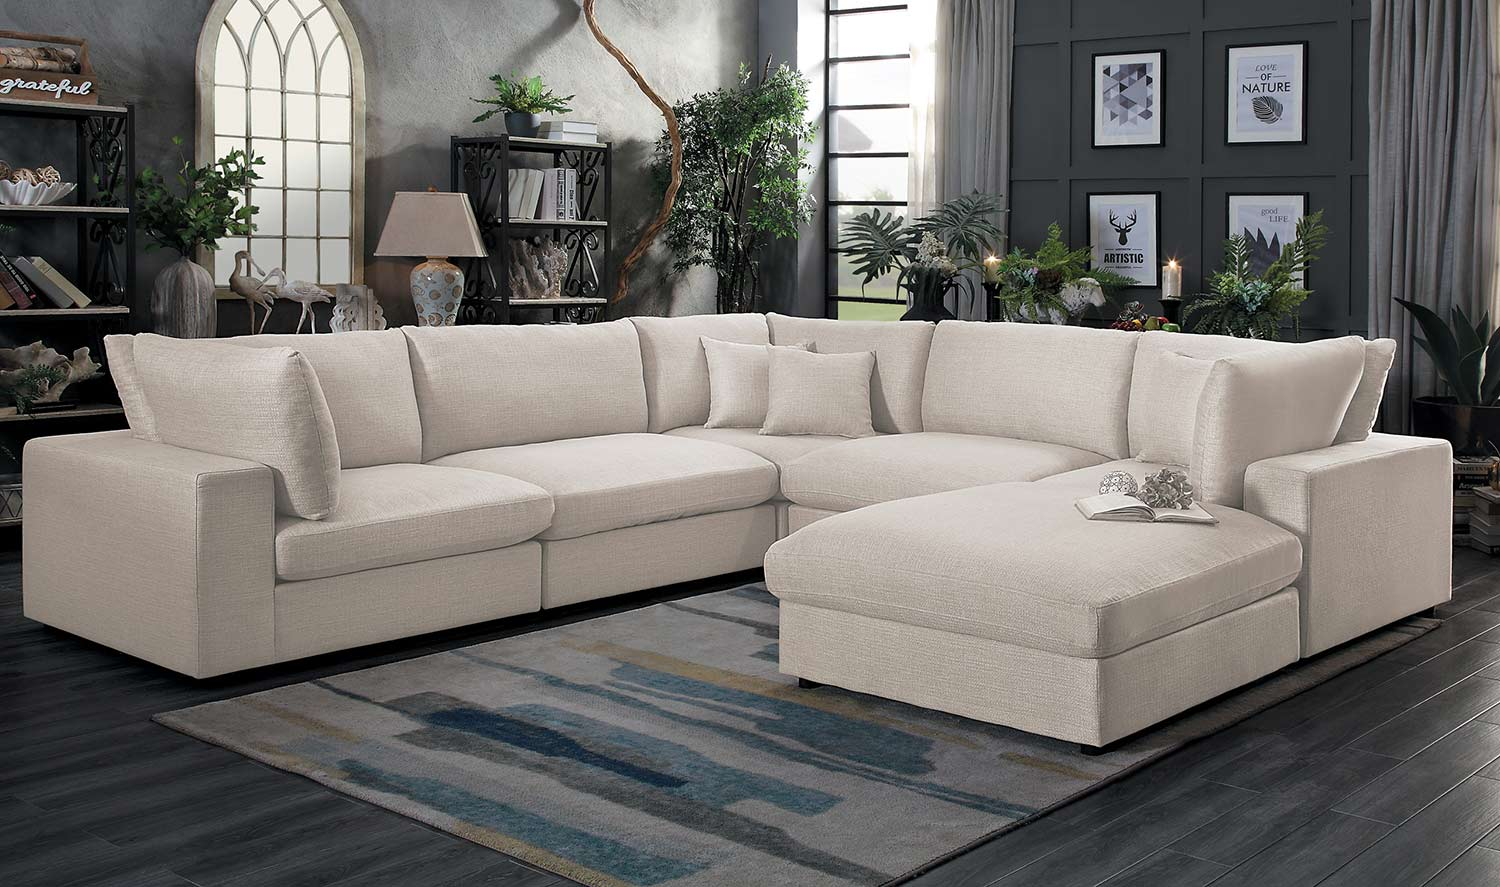 Homelegance Casoria Sectional Sofa Set - Neutral